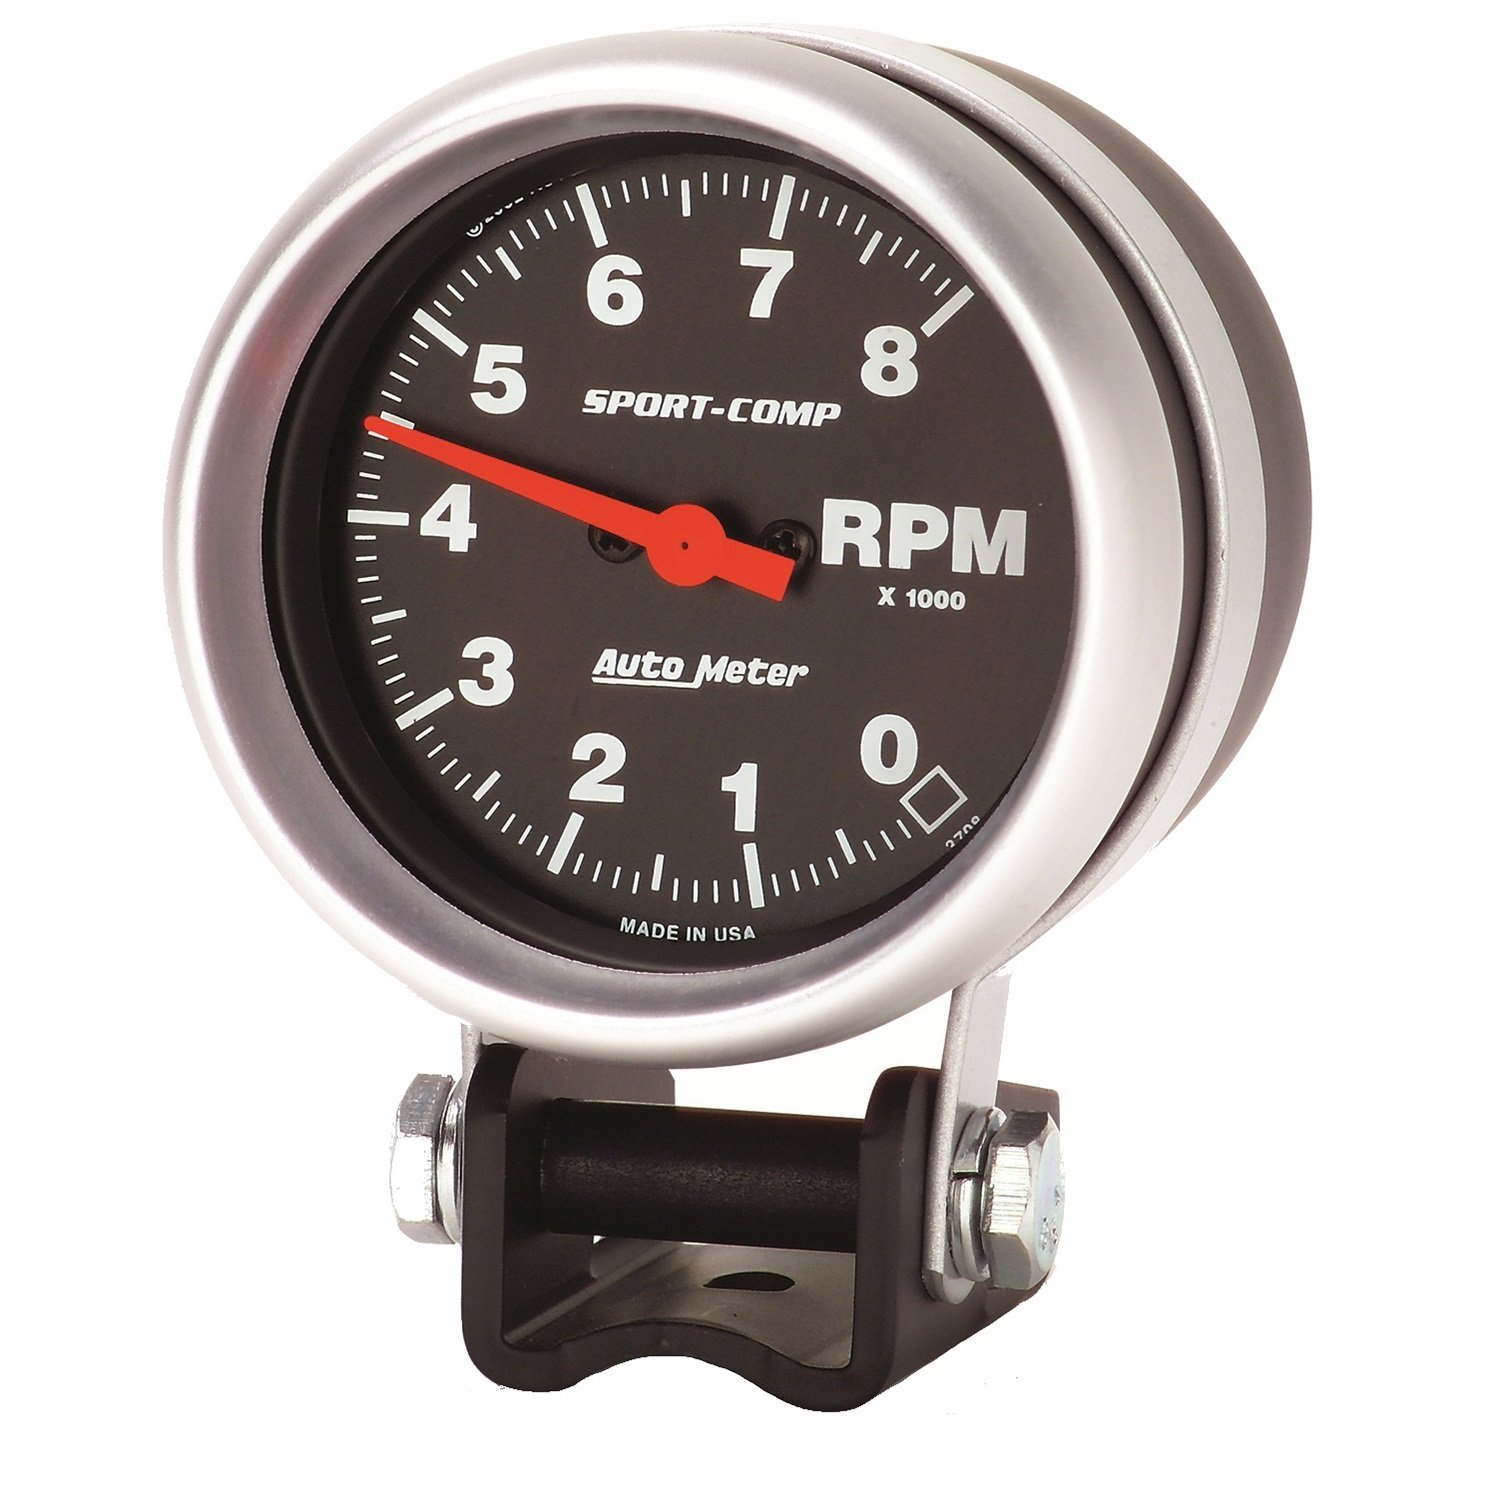 Best Rated In Automotive Performance Ignition Electrical Gauges 1982 Ford F 150 Factory Tach Wiring Auto Meter 3708 Sport Comp Mini Competition Tachometer Product Image